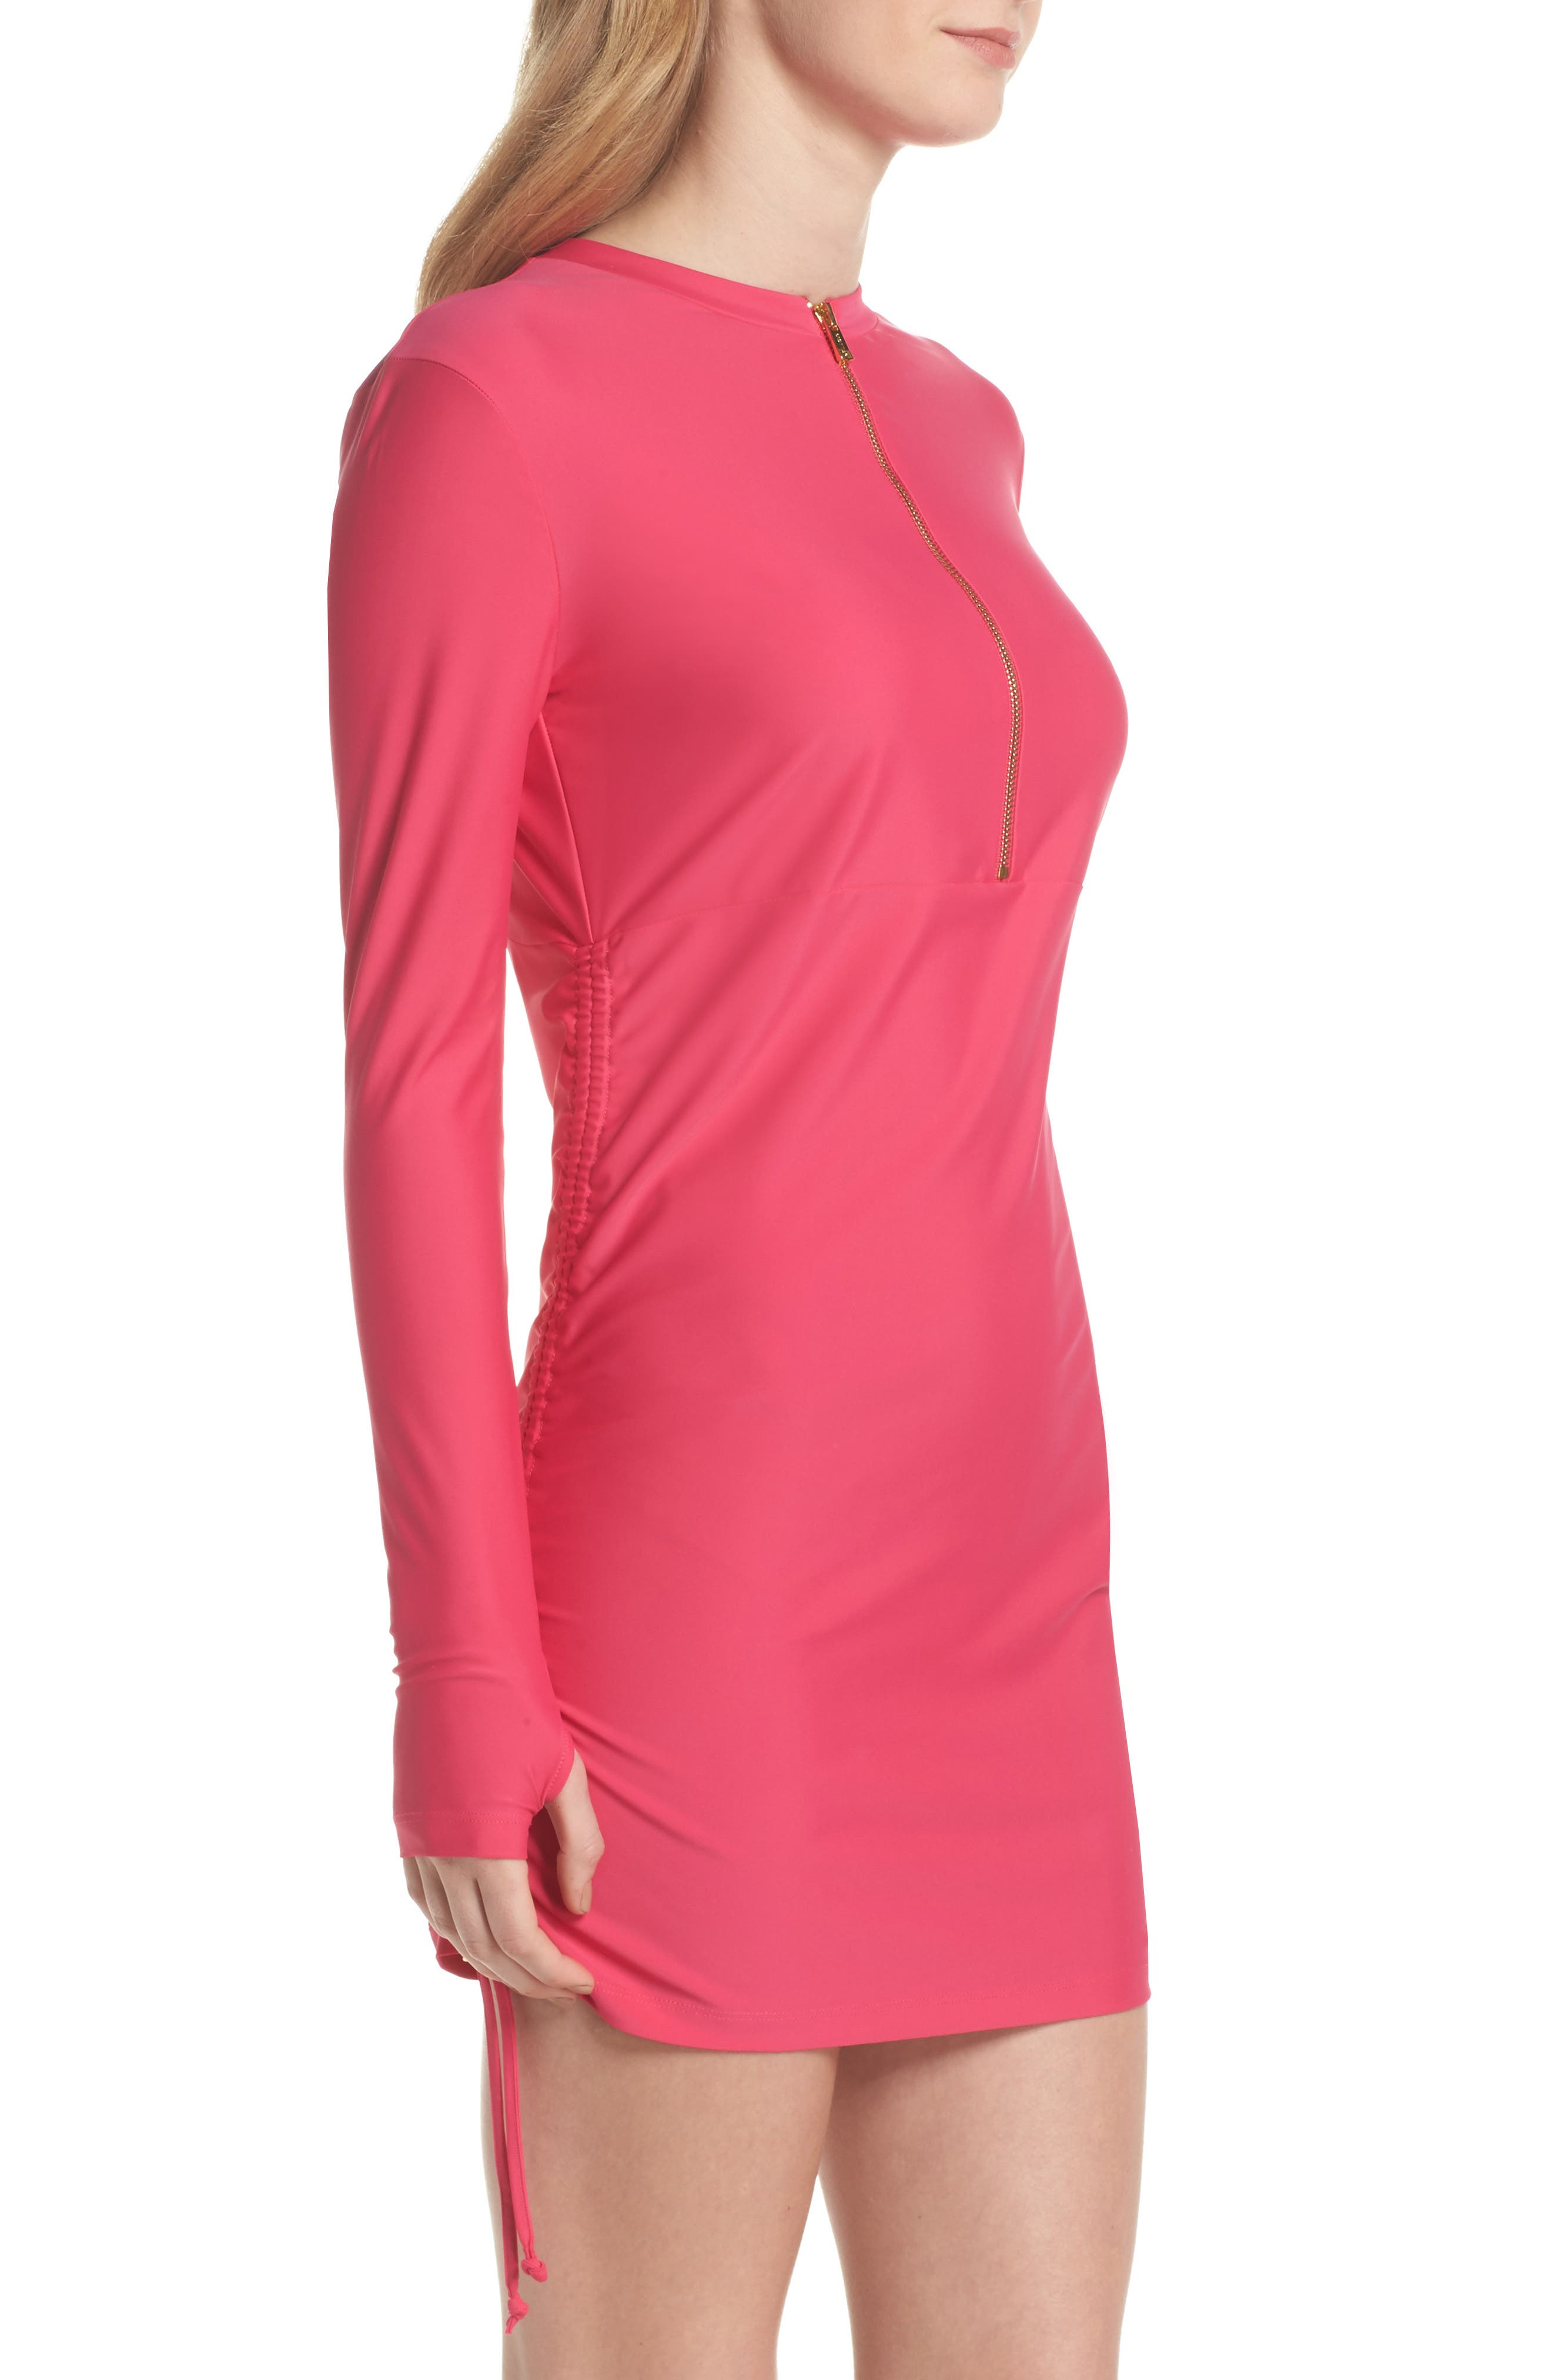 Sonja UPF 50 Cover-Up Swim Dress,                             Alternate thumbnail 3, color,                             Fuchsia